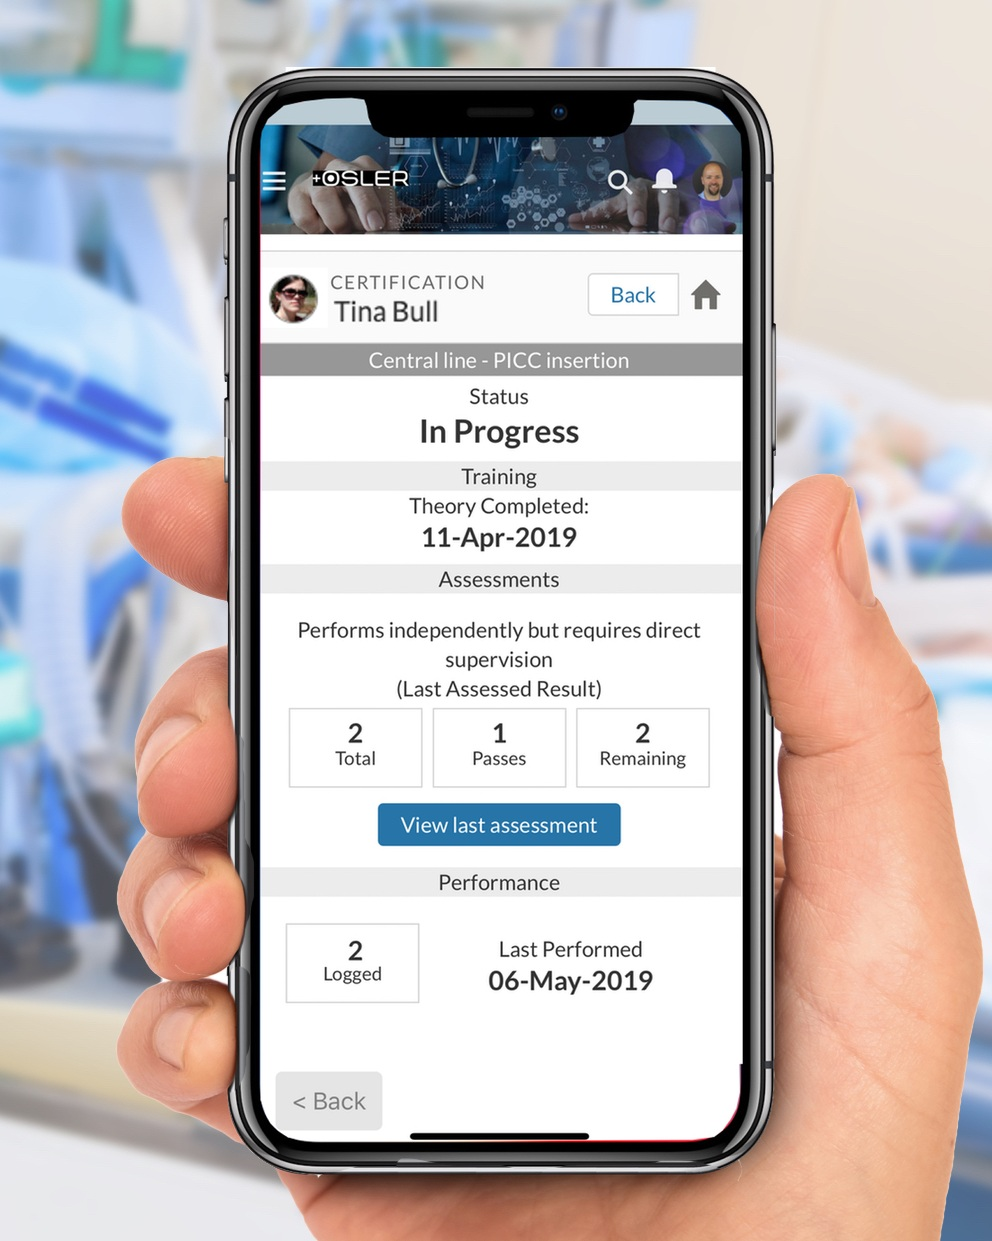 Information at your fingertips - To truly support the growth and development of your junior staff, you need understand what they can do right now.  Osler gives you realtime progress information on their progress, right there on your mobile device.